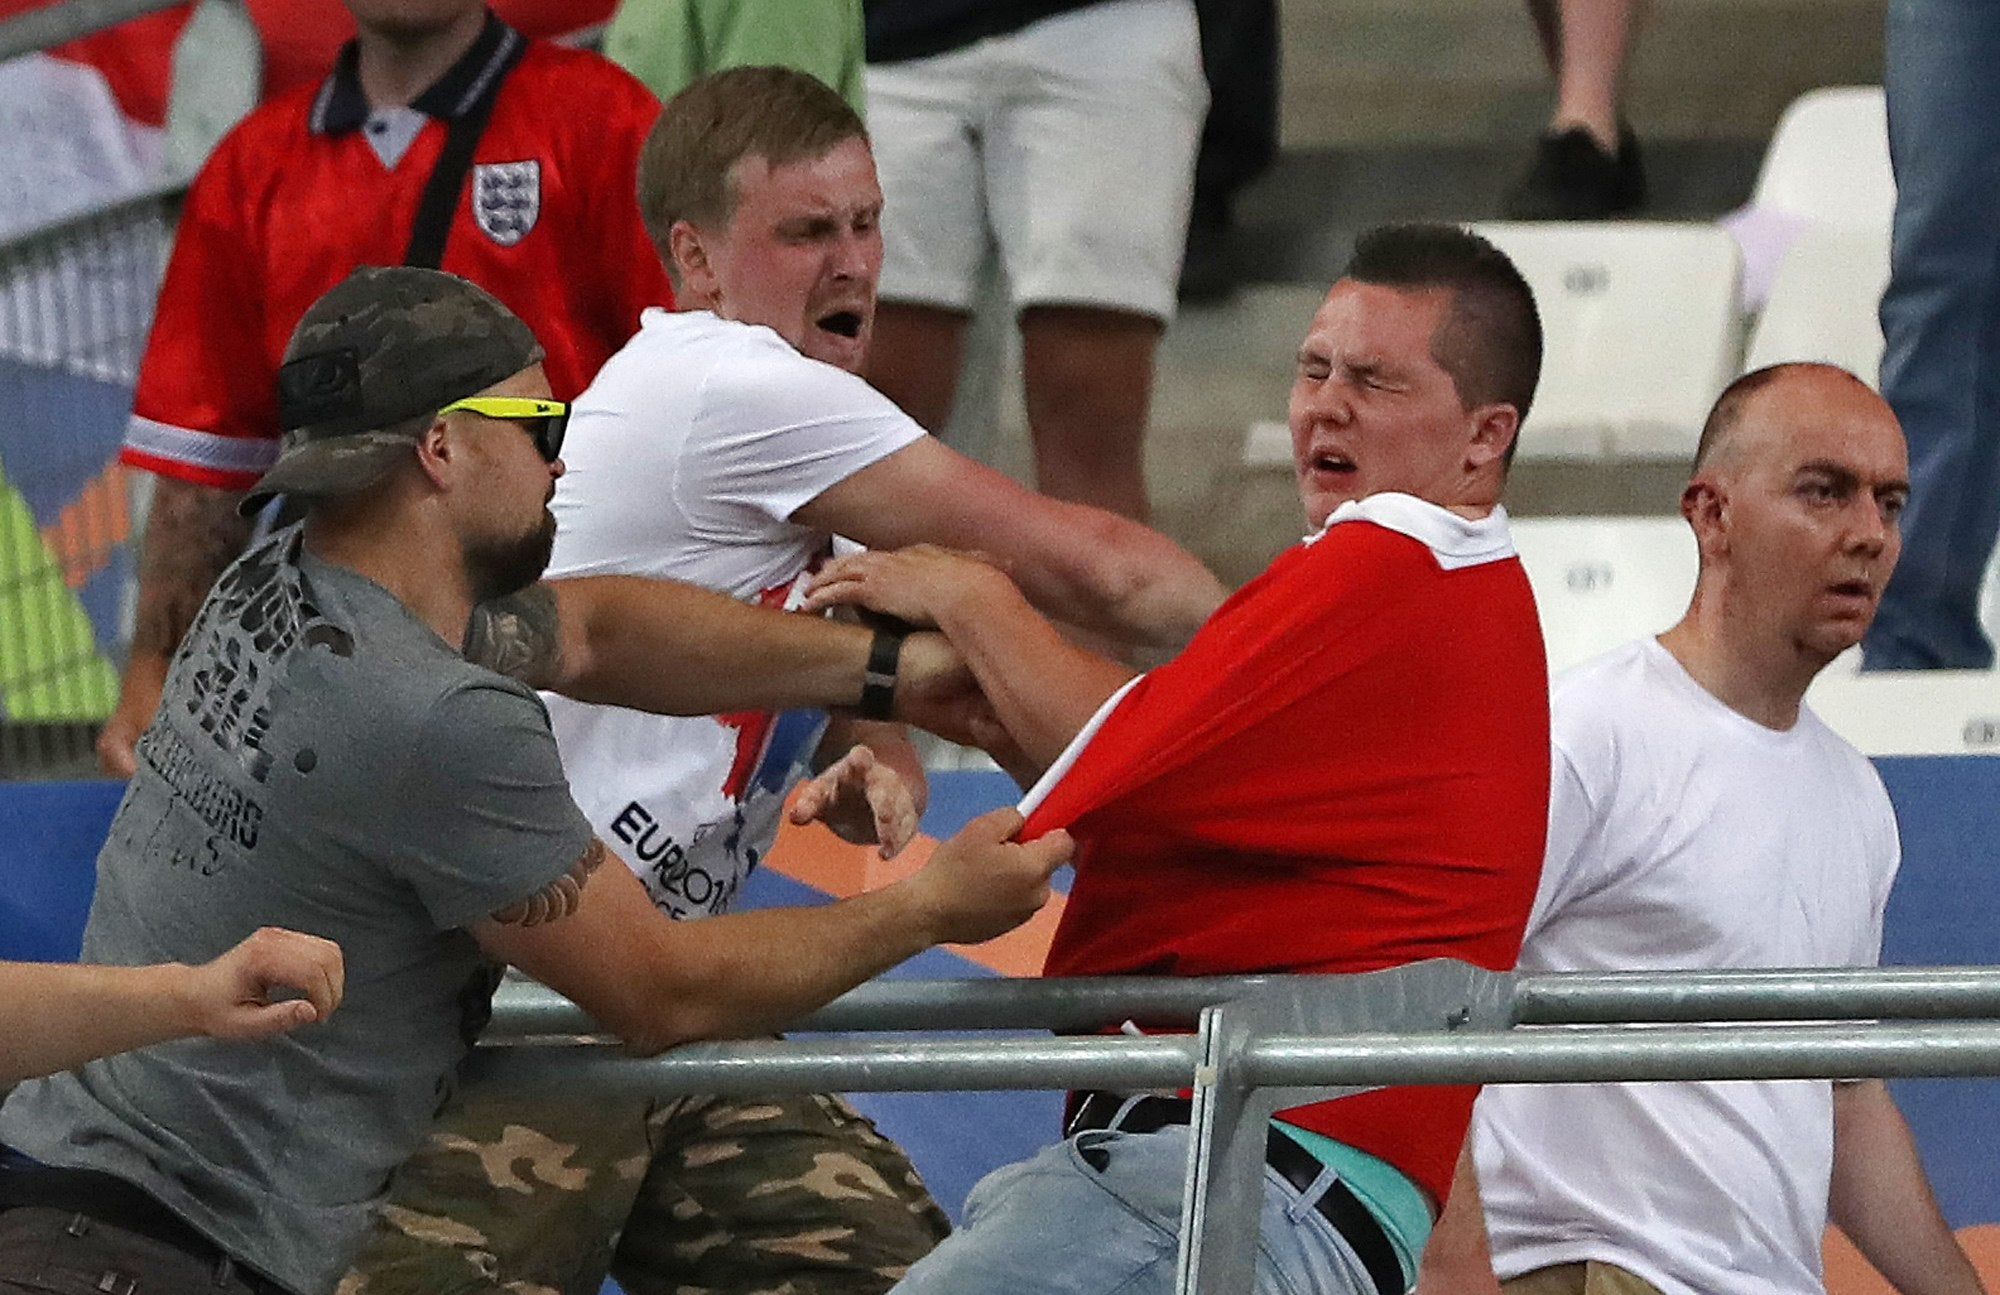 Euro       Marseille stadium violence raises security fears after Russia fans storm England supporters      section   The Independent